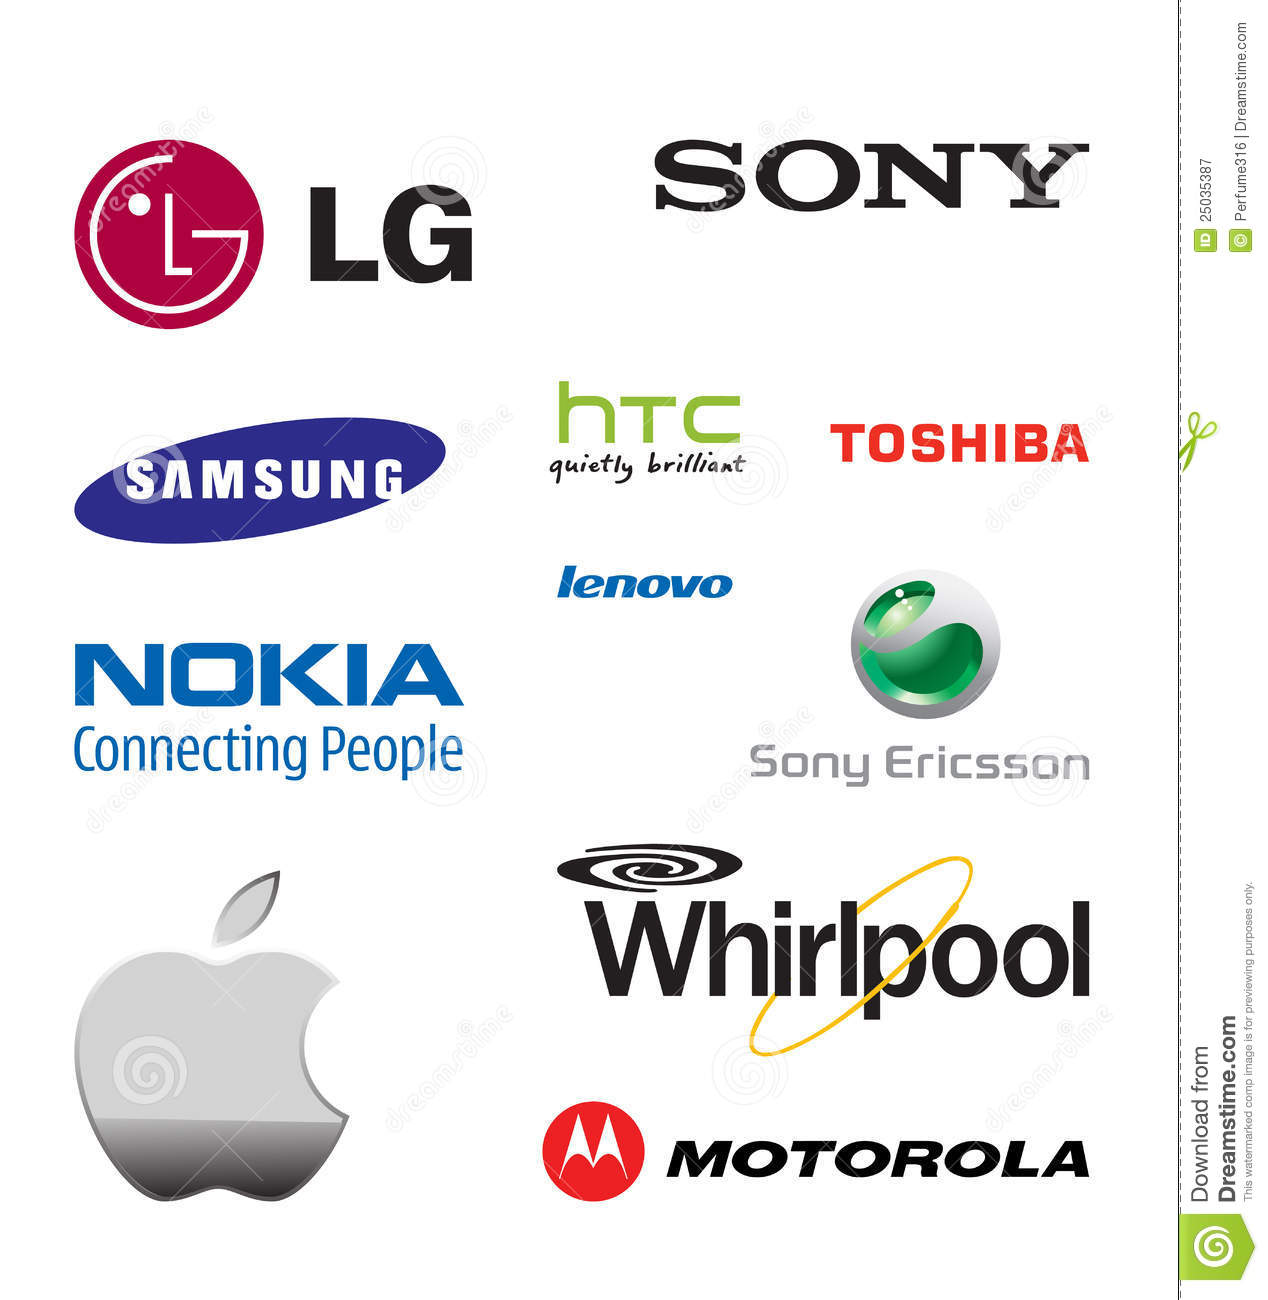 world famous mobile phone brands 25035387